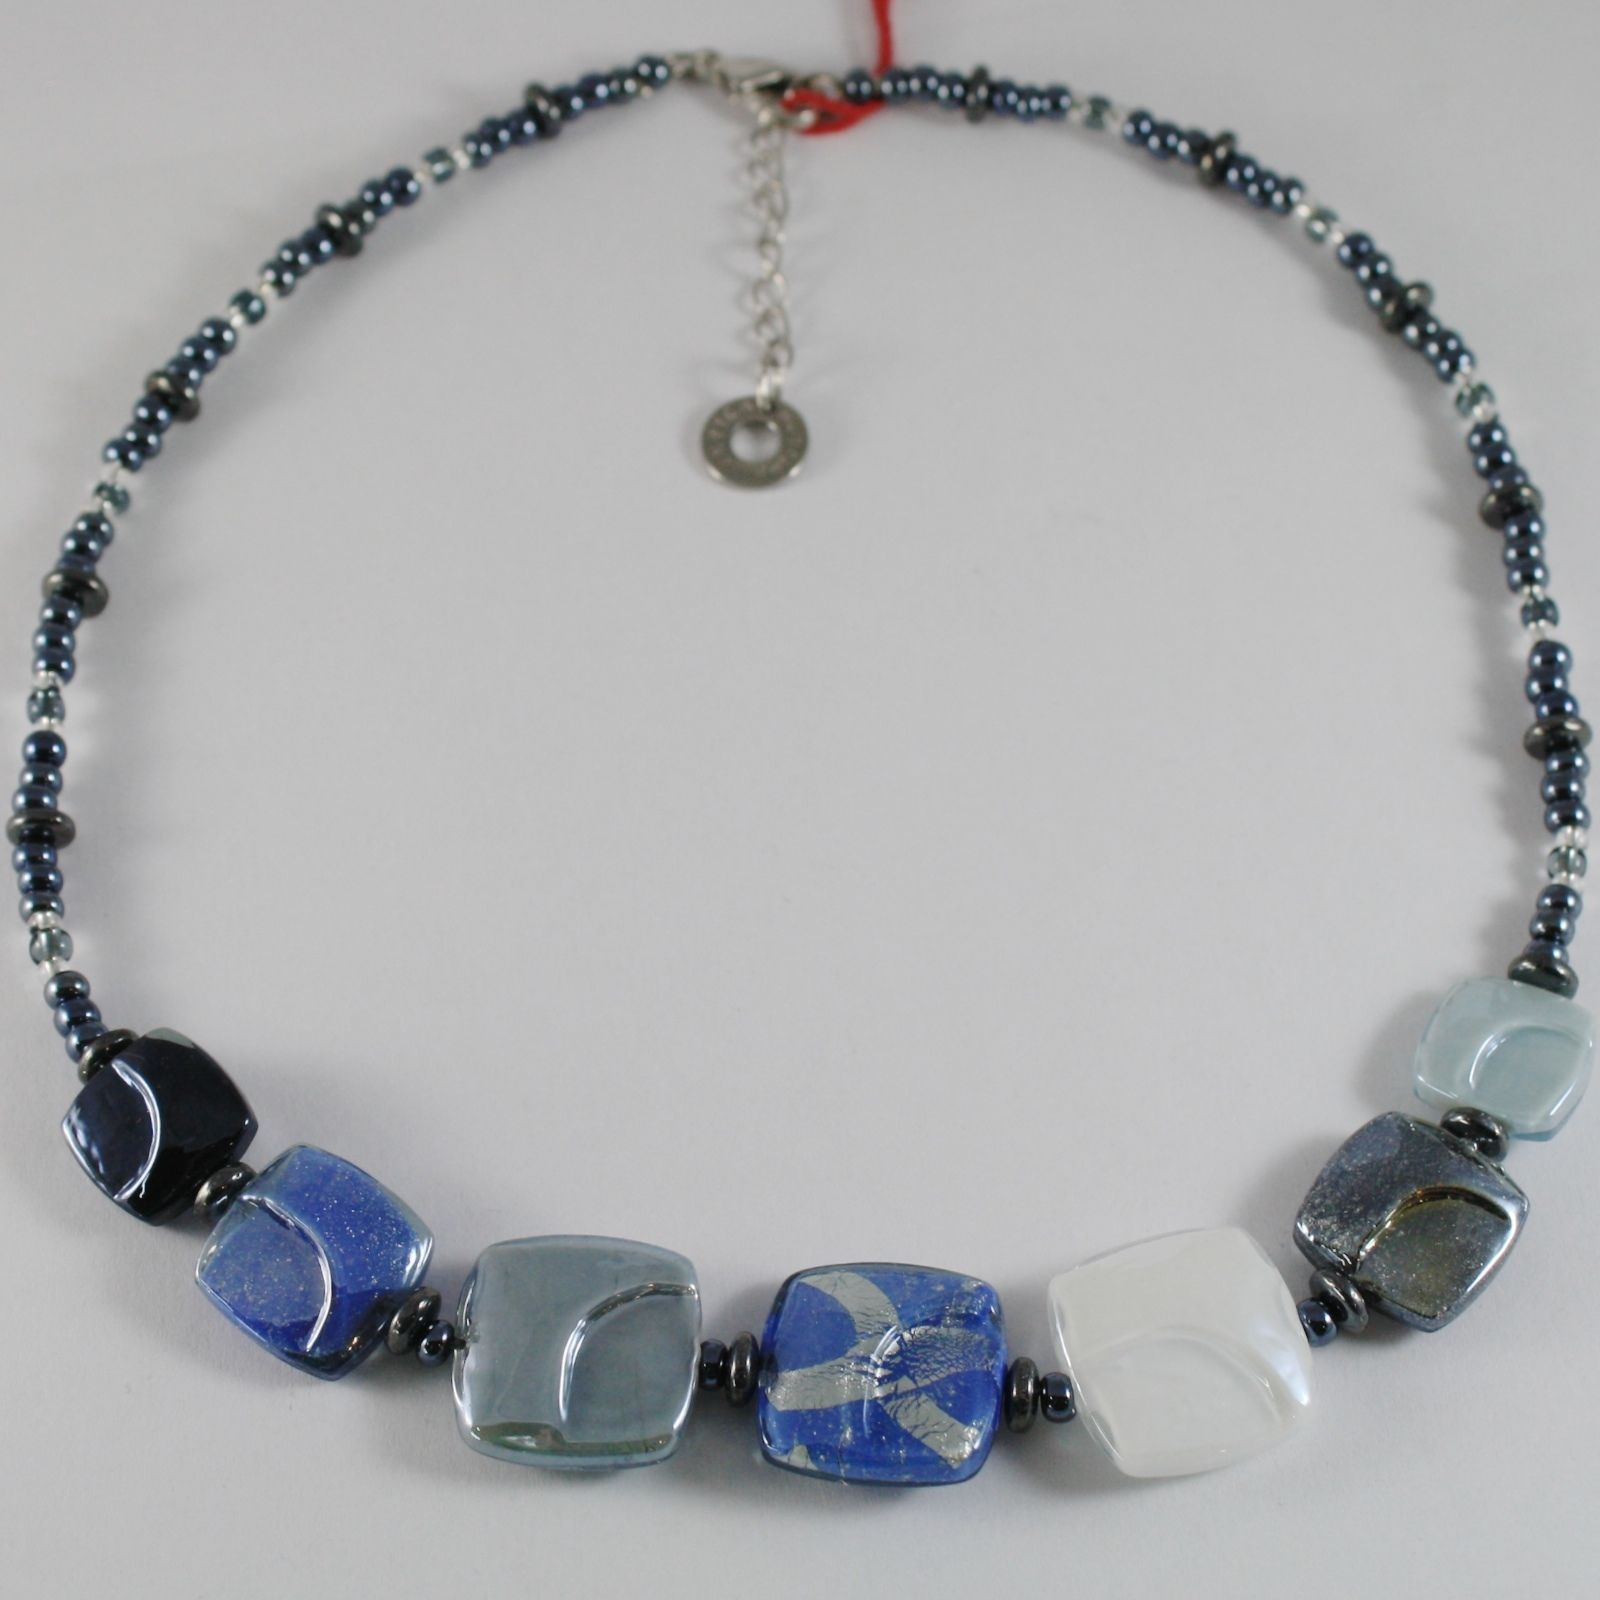 ANTICA MURRINA VENEZIA CORNER NECKLACE MULTICOLOR GRAY WITHE BLUE SQUARE SQUARES